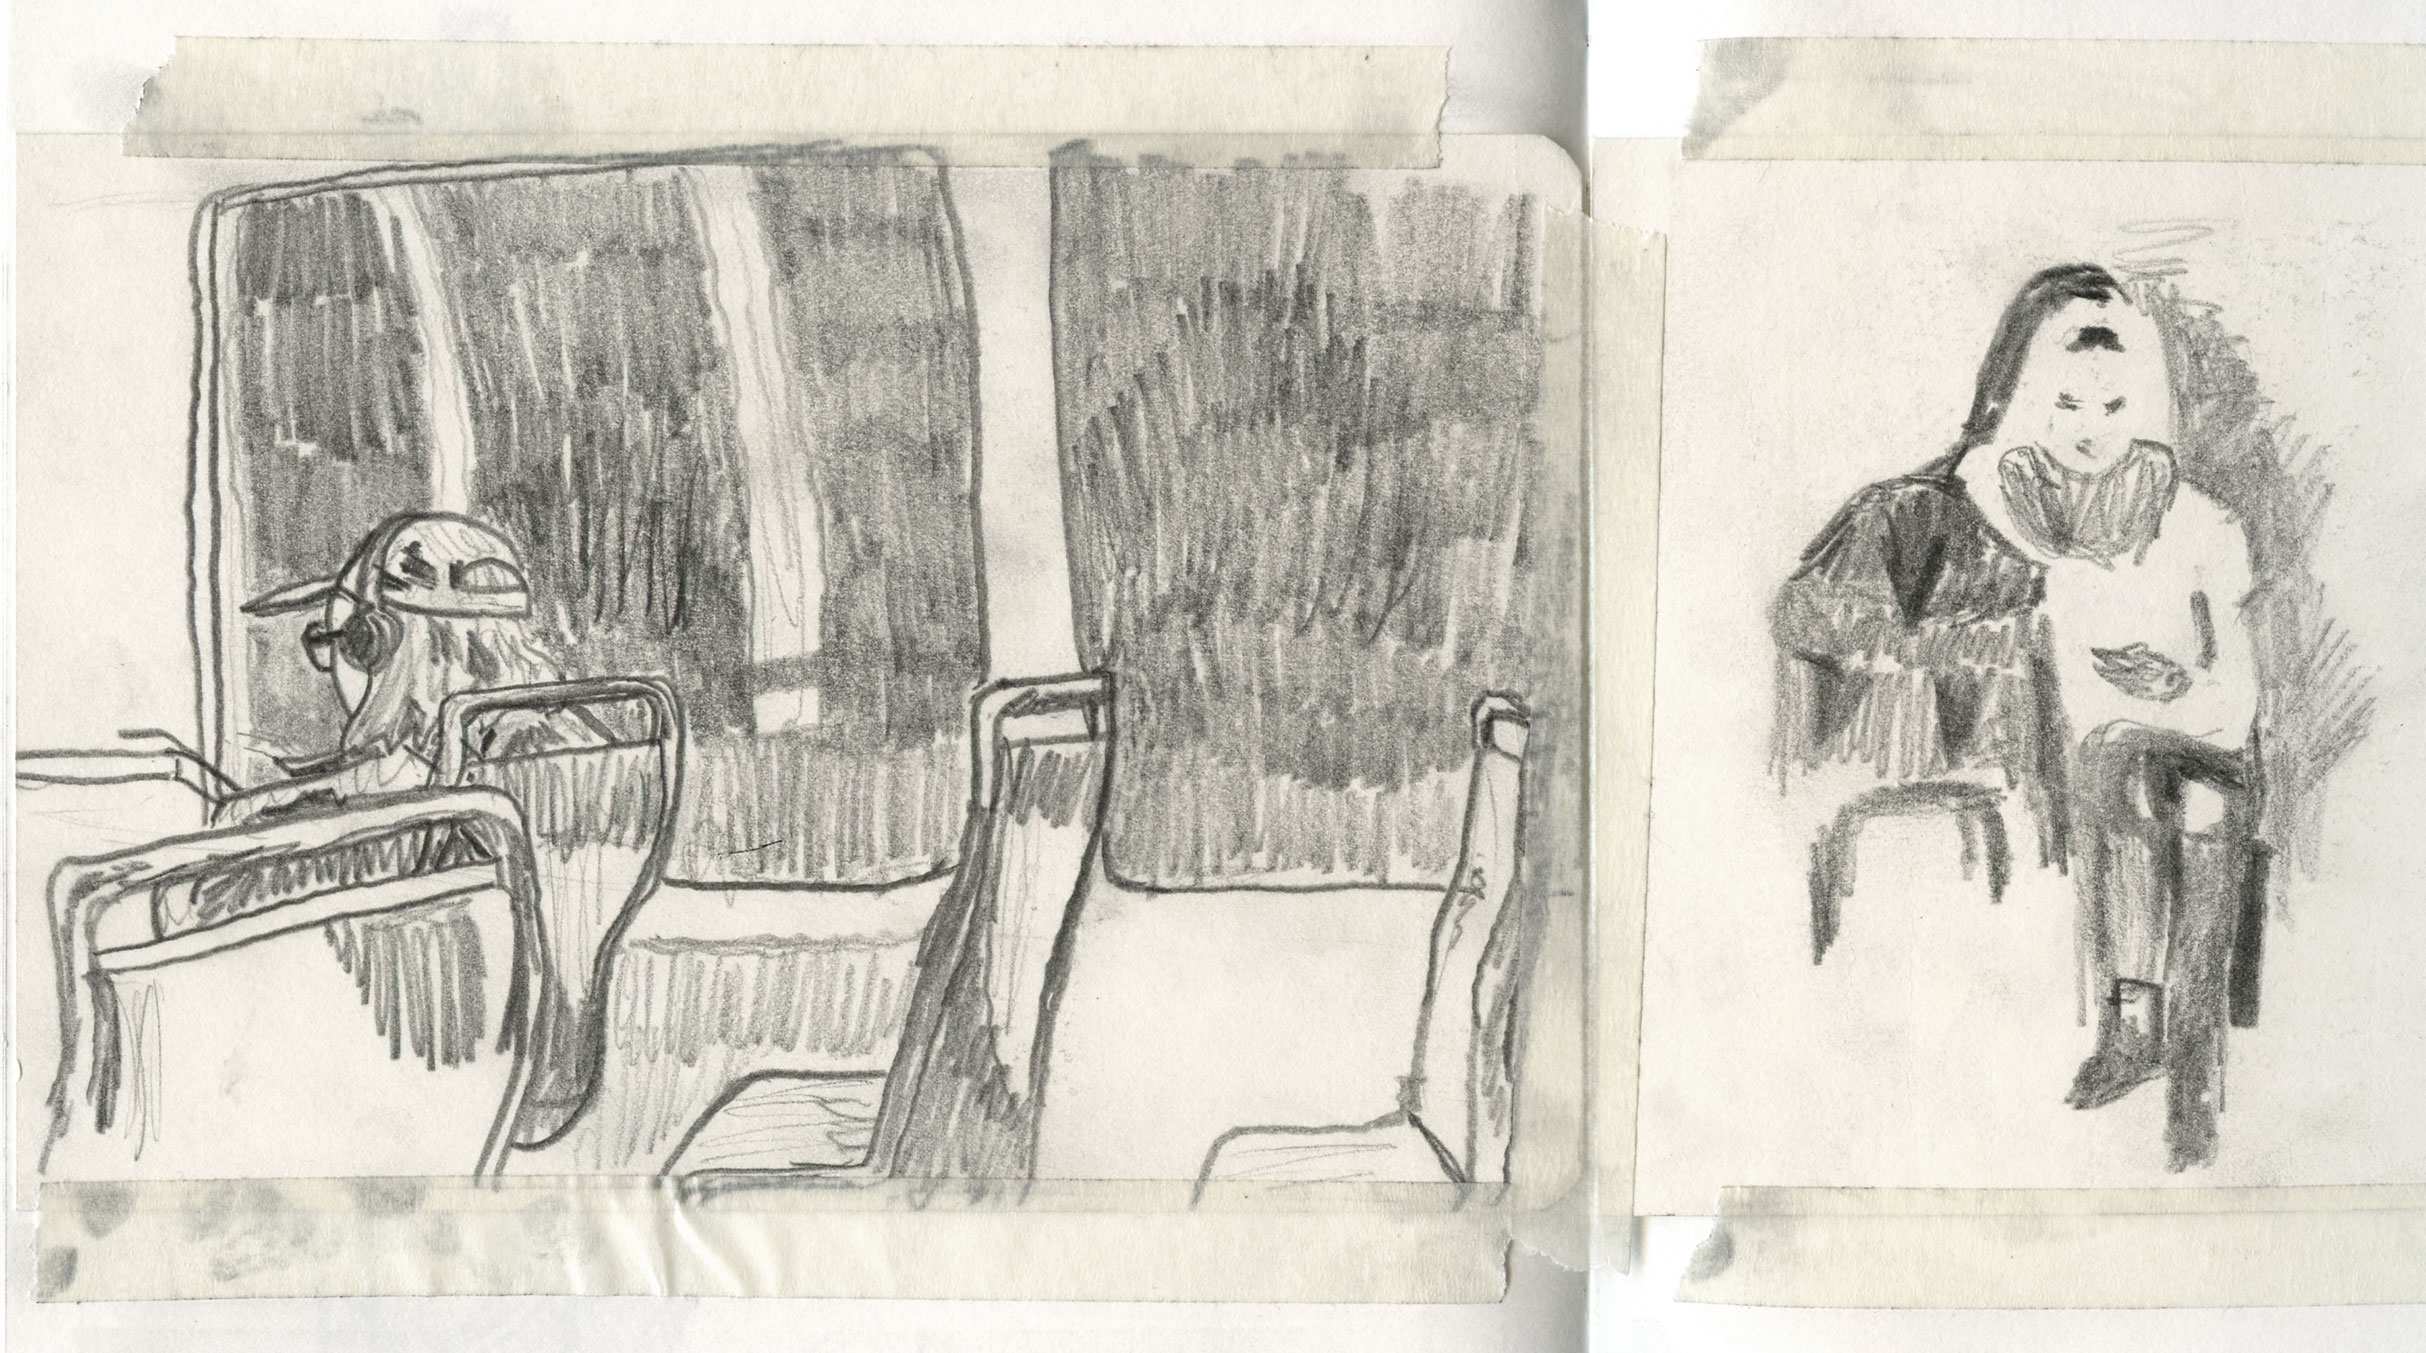 sketch of commuters by ellen vesters illustrator ma childrens book illustration